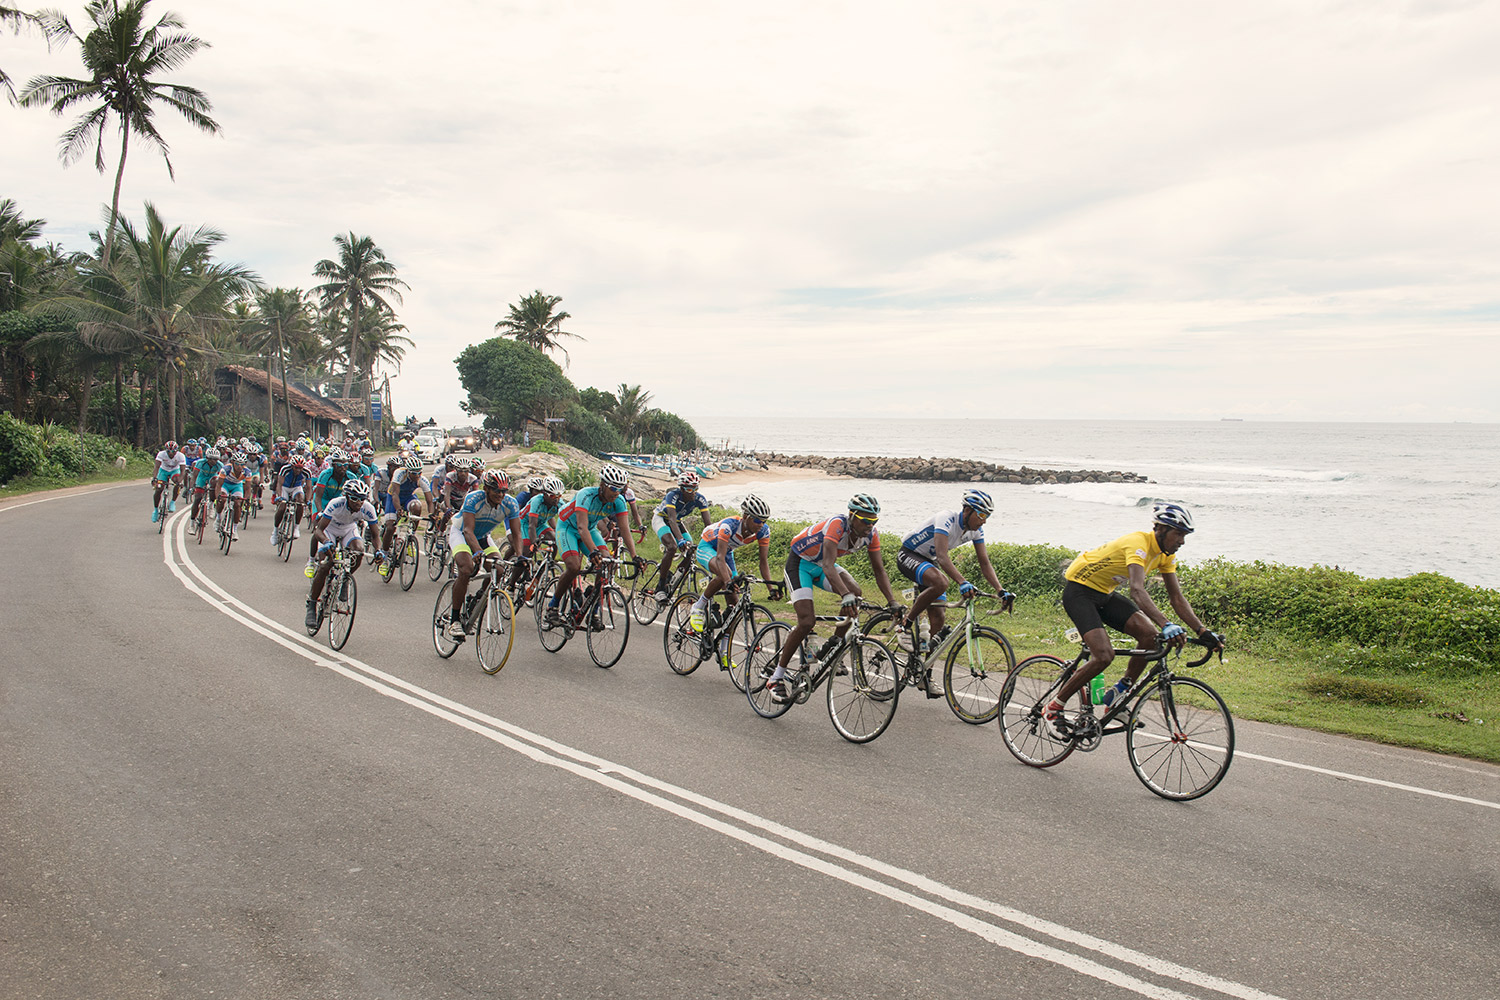 Sri Lanka's inaugural President's Race took place over three days in the run-up to the country's general election. The teams with the most backing were The Air Force, Navy, Army, Police and Ports Authority.